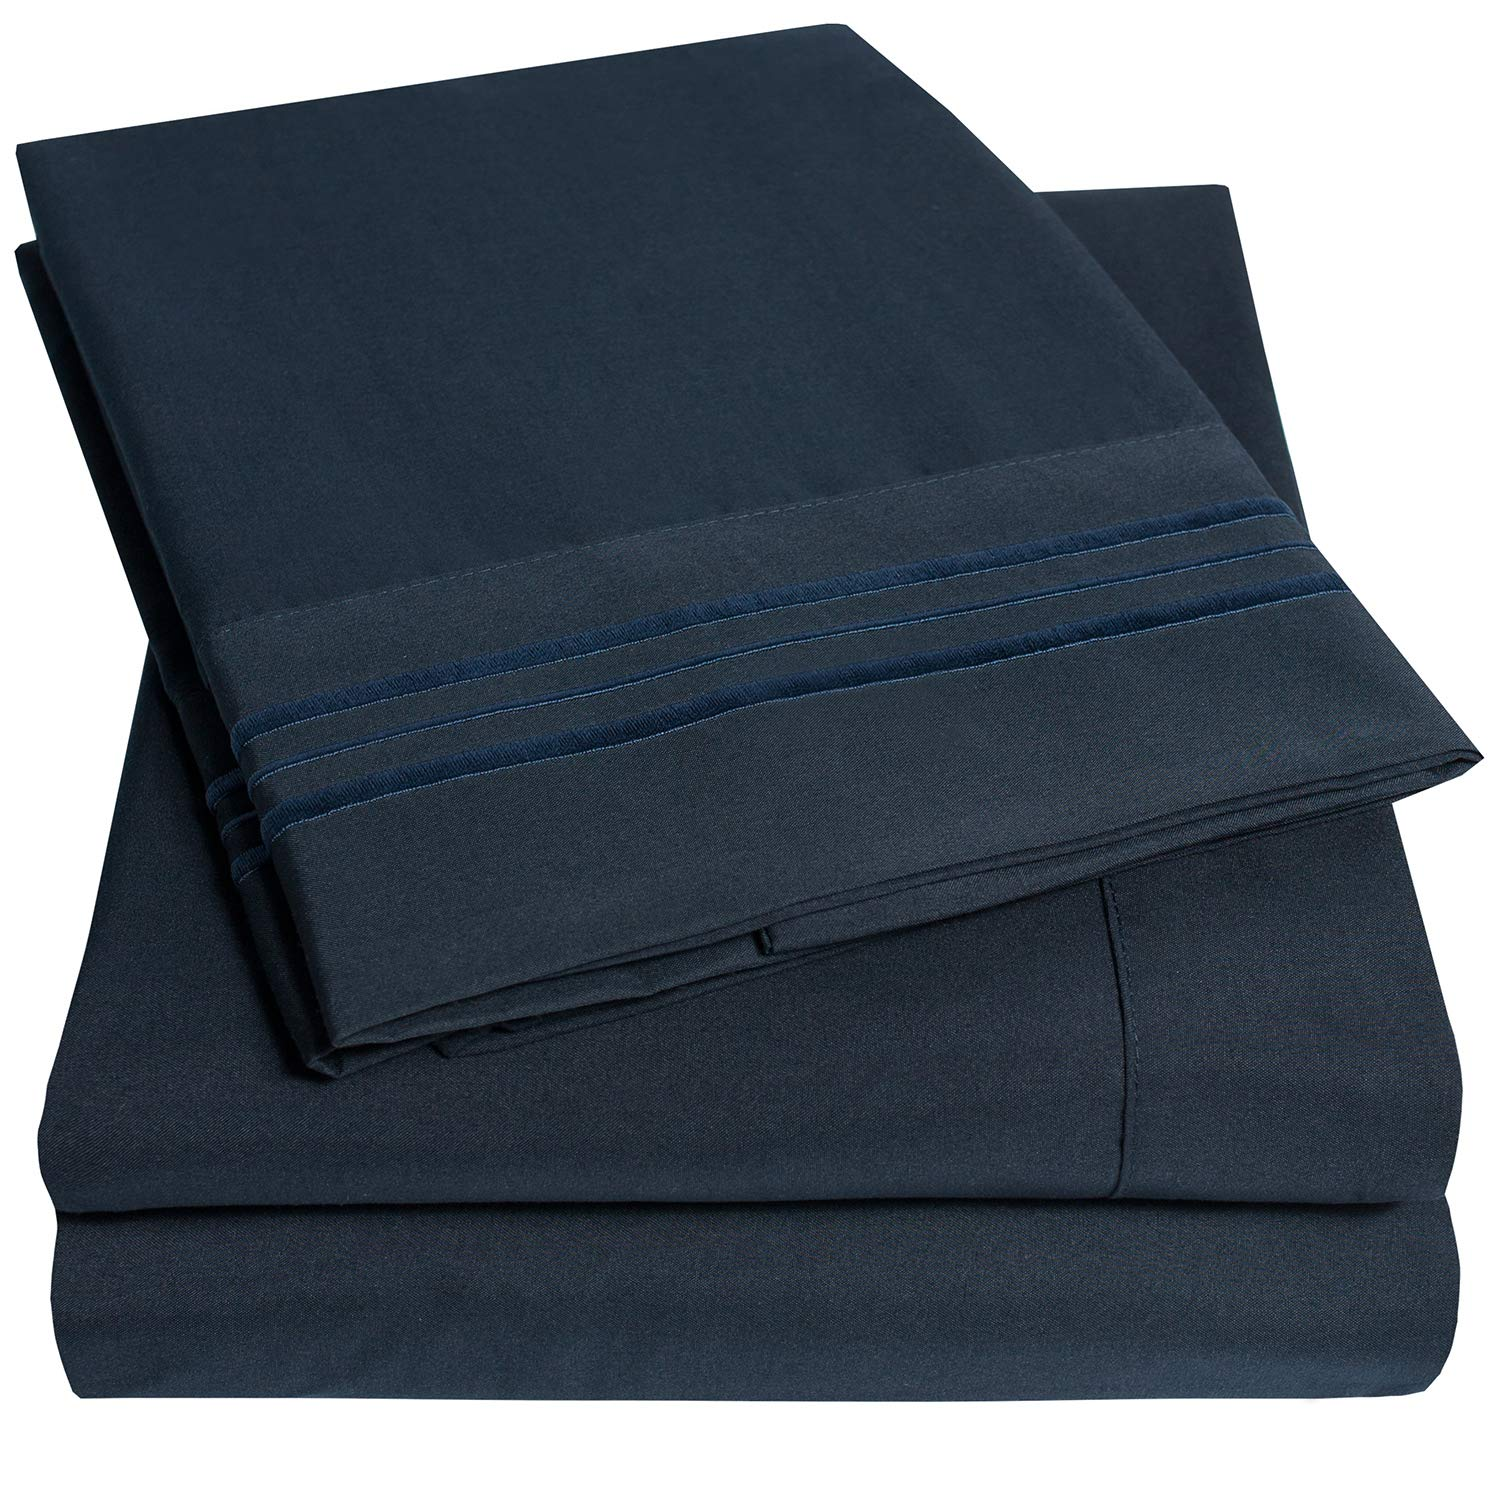 1500 Supreme Collection Extra Soft California King Sheets Set, Navy Blue - Luxury Bed Sheets Set with Deep Pocket Wrinkle Free Hypoallergenic Bedding, Over 40 Colors, California King Size, Navy